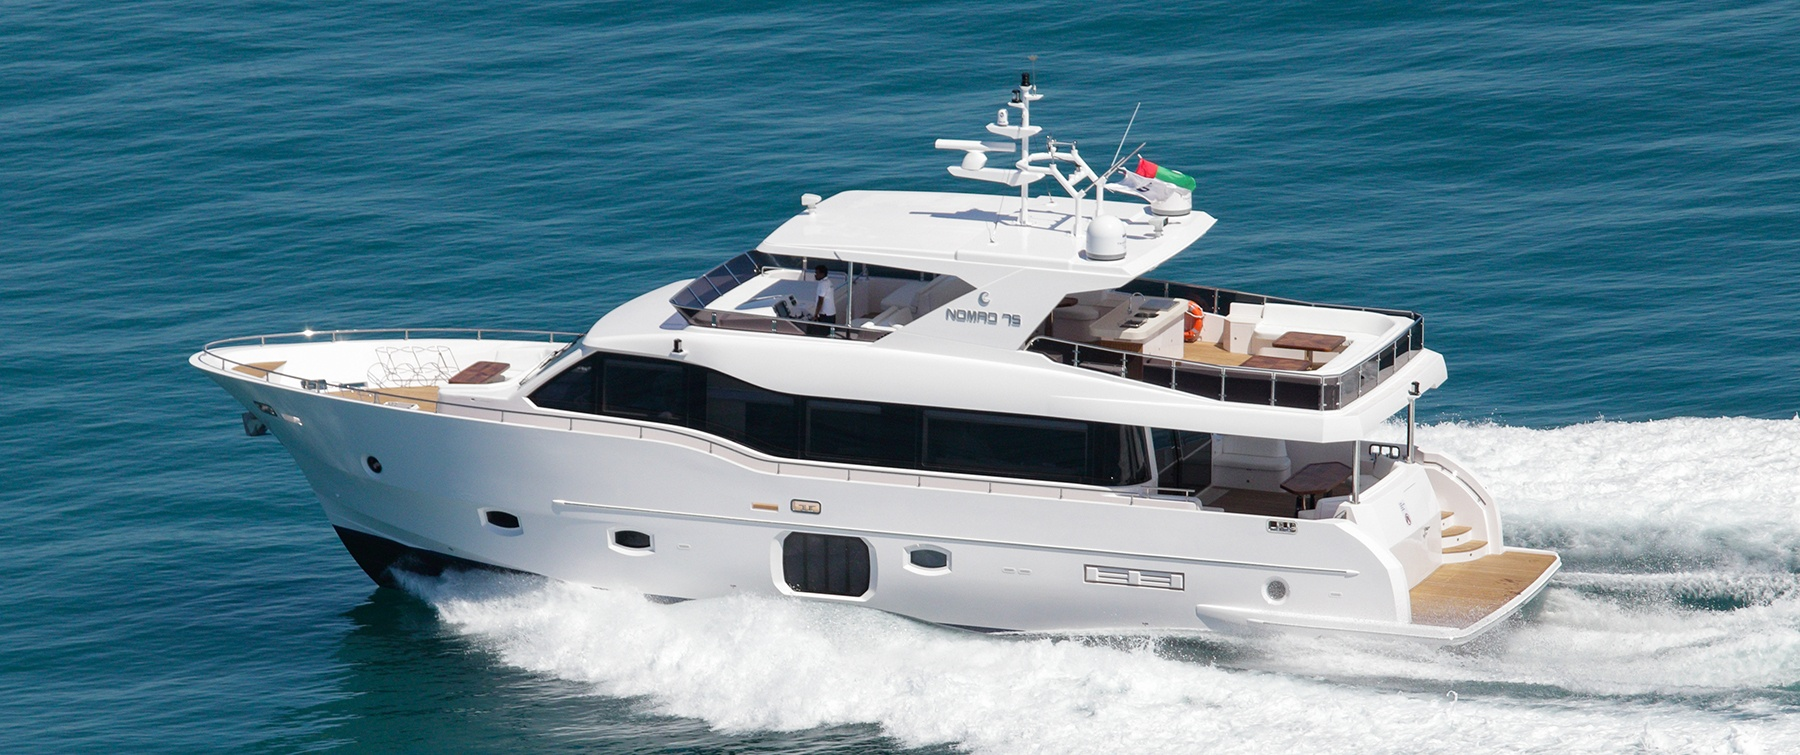 The superb exterior of the Nomad 75